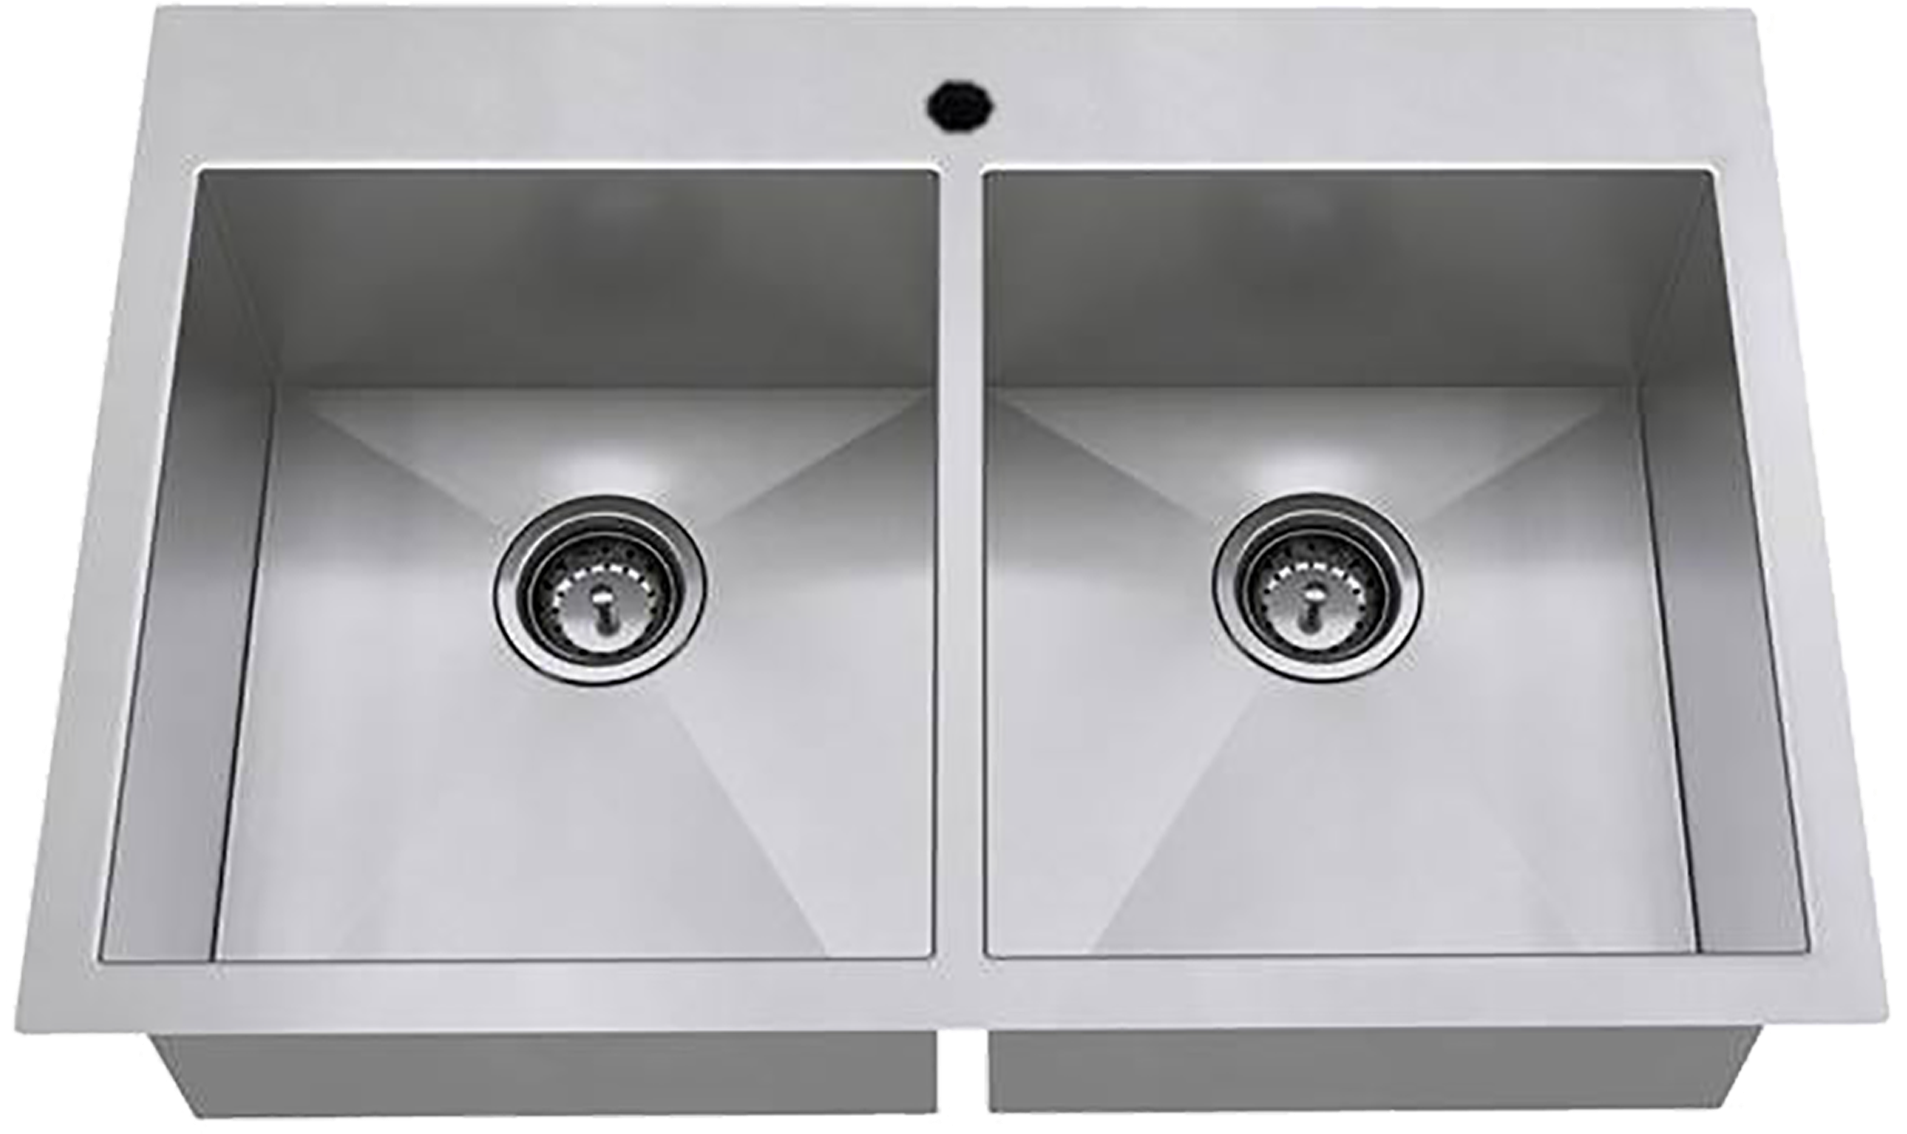 Stainless steel double kitchen sink 2000x2000 png download